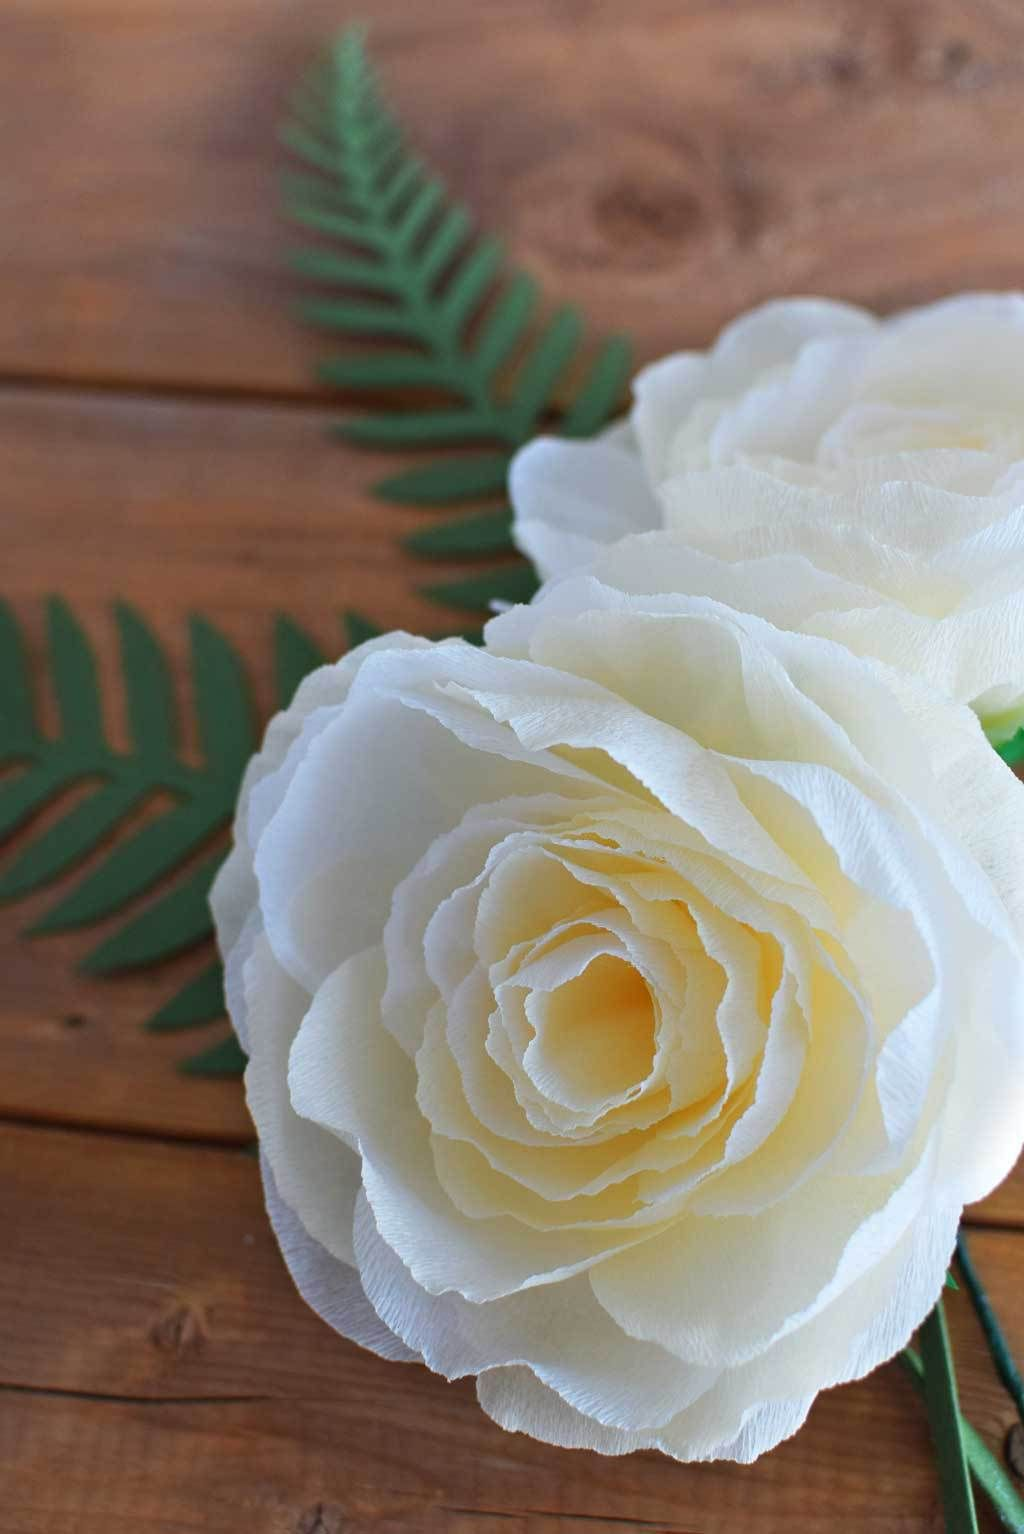 DIY-Crepe-Paper-Garden-Rose-close-up-#DIY-#wedding-#rose-#gardenrose-#paperflower-#centrepiece